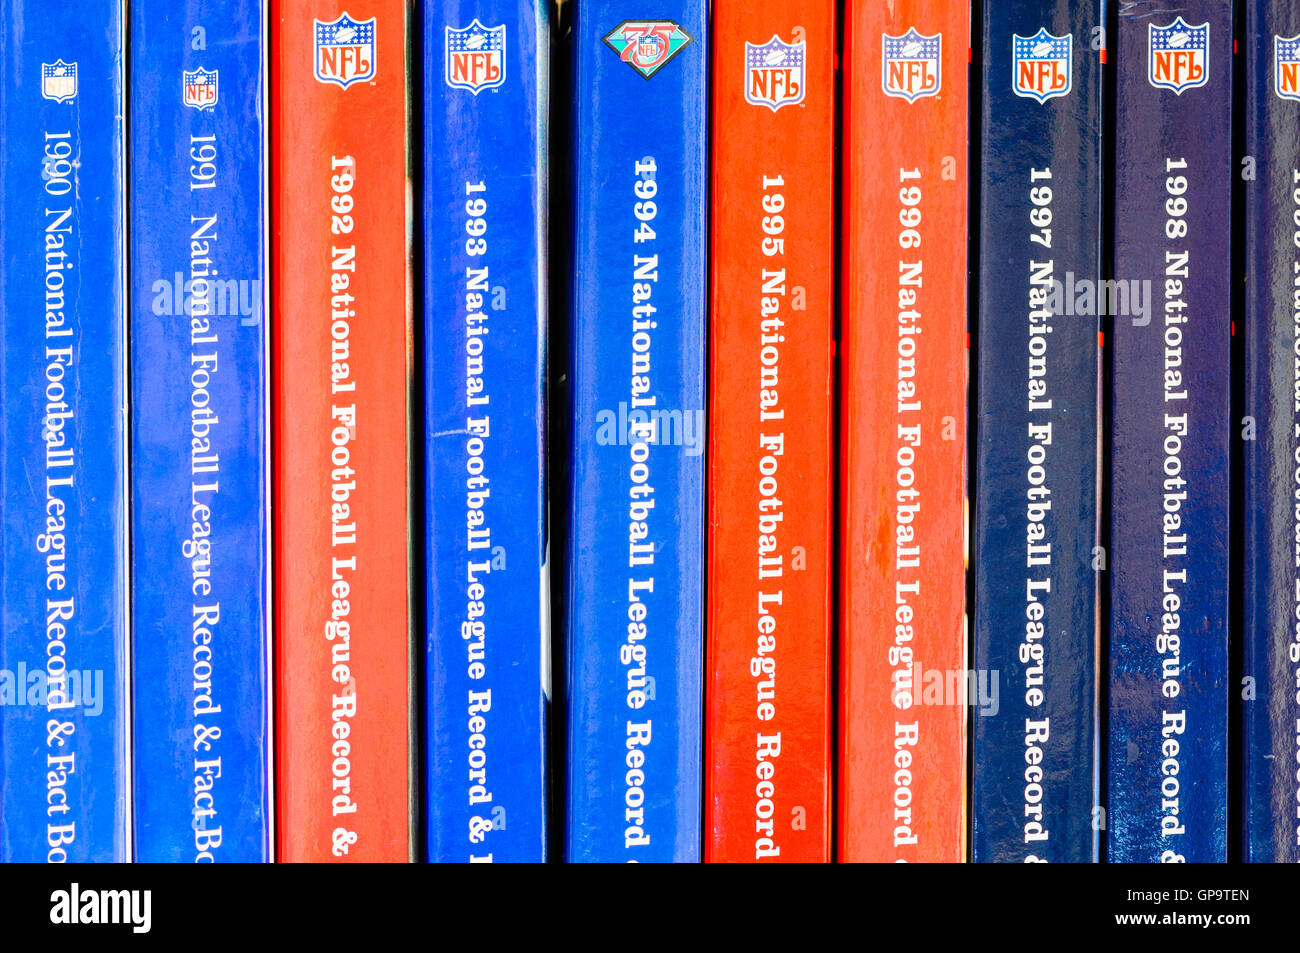 NFL official American Football yearbooks from the 1990s - Stock Image